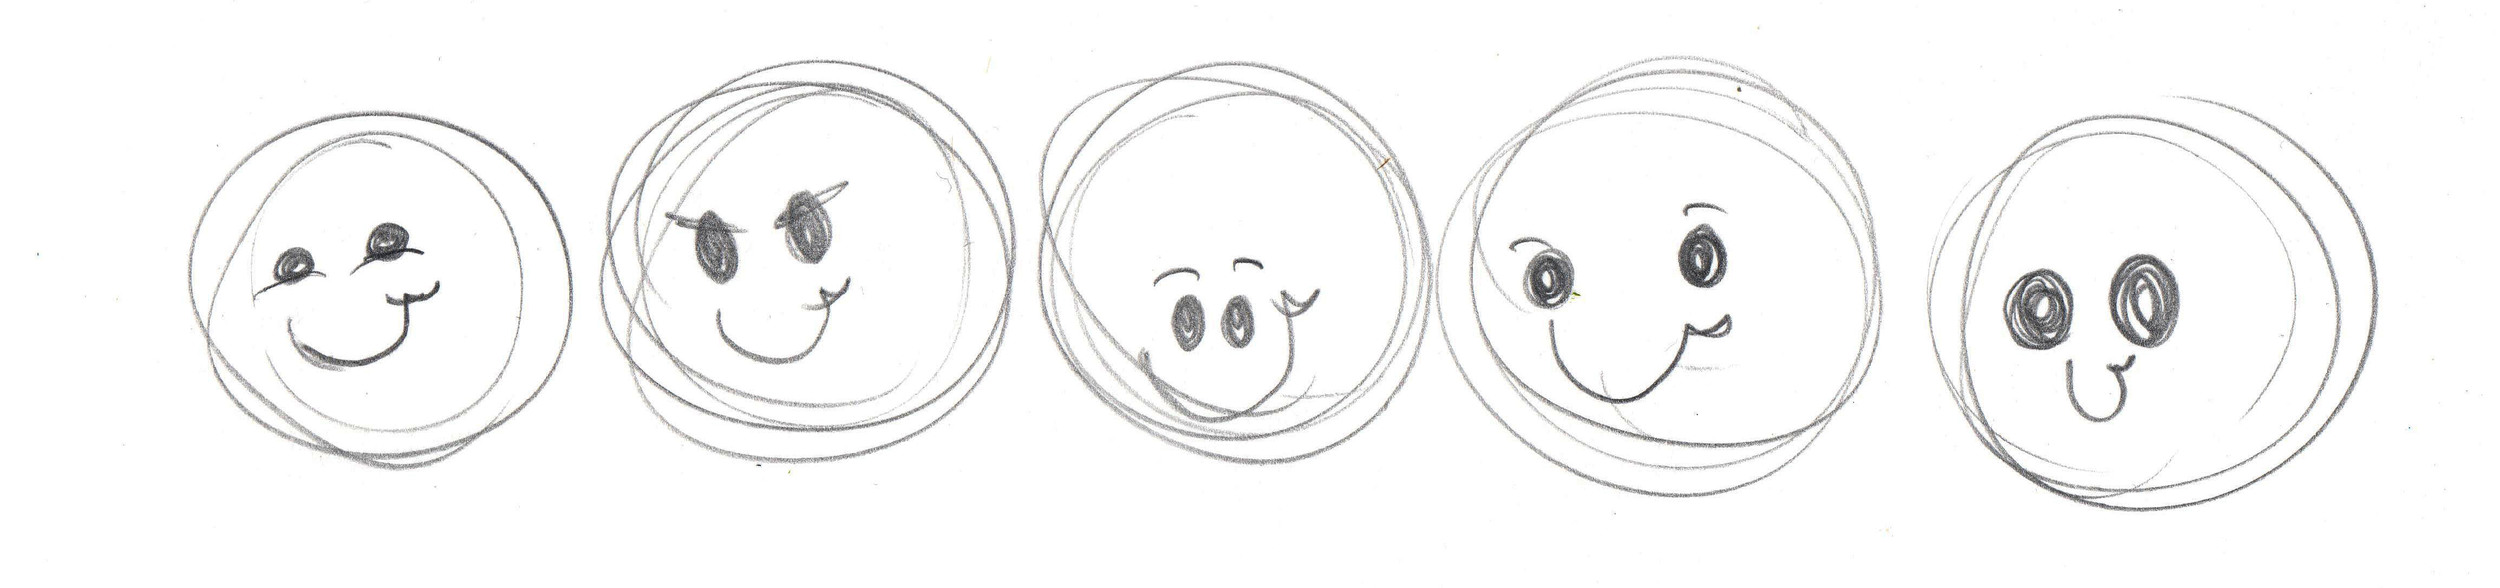 Doodle faces to learn how to change expressions in your stamps | VanillaArts.com